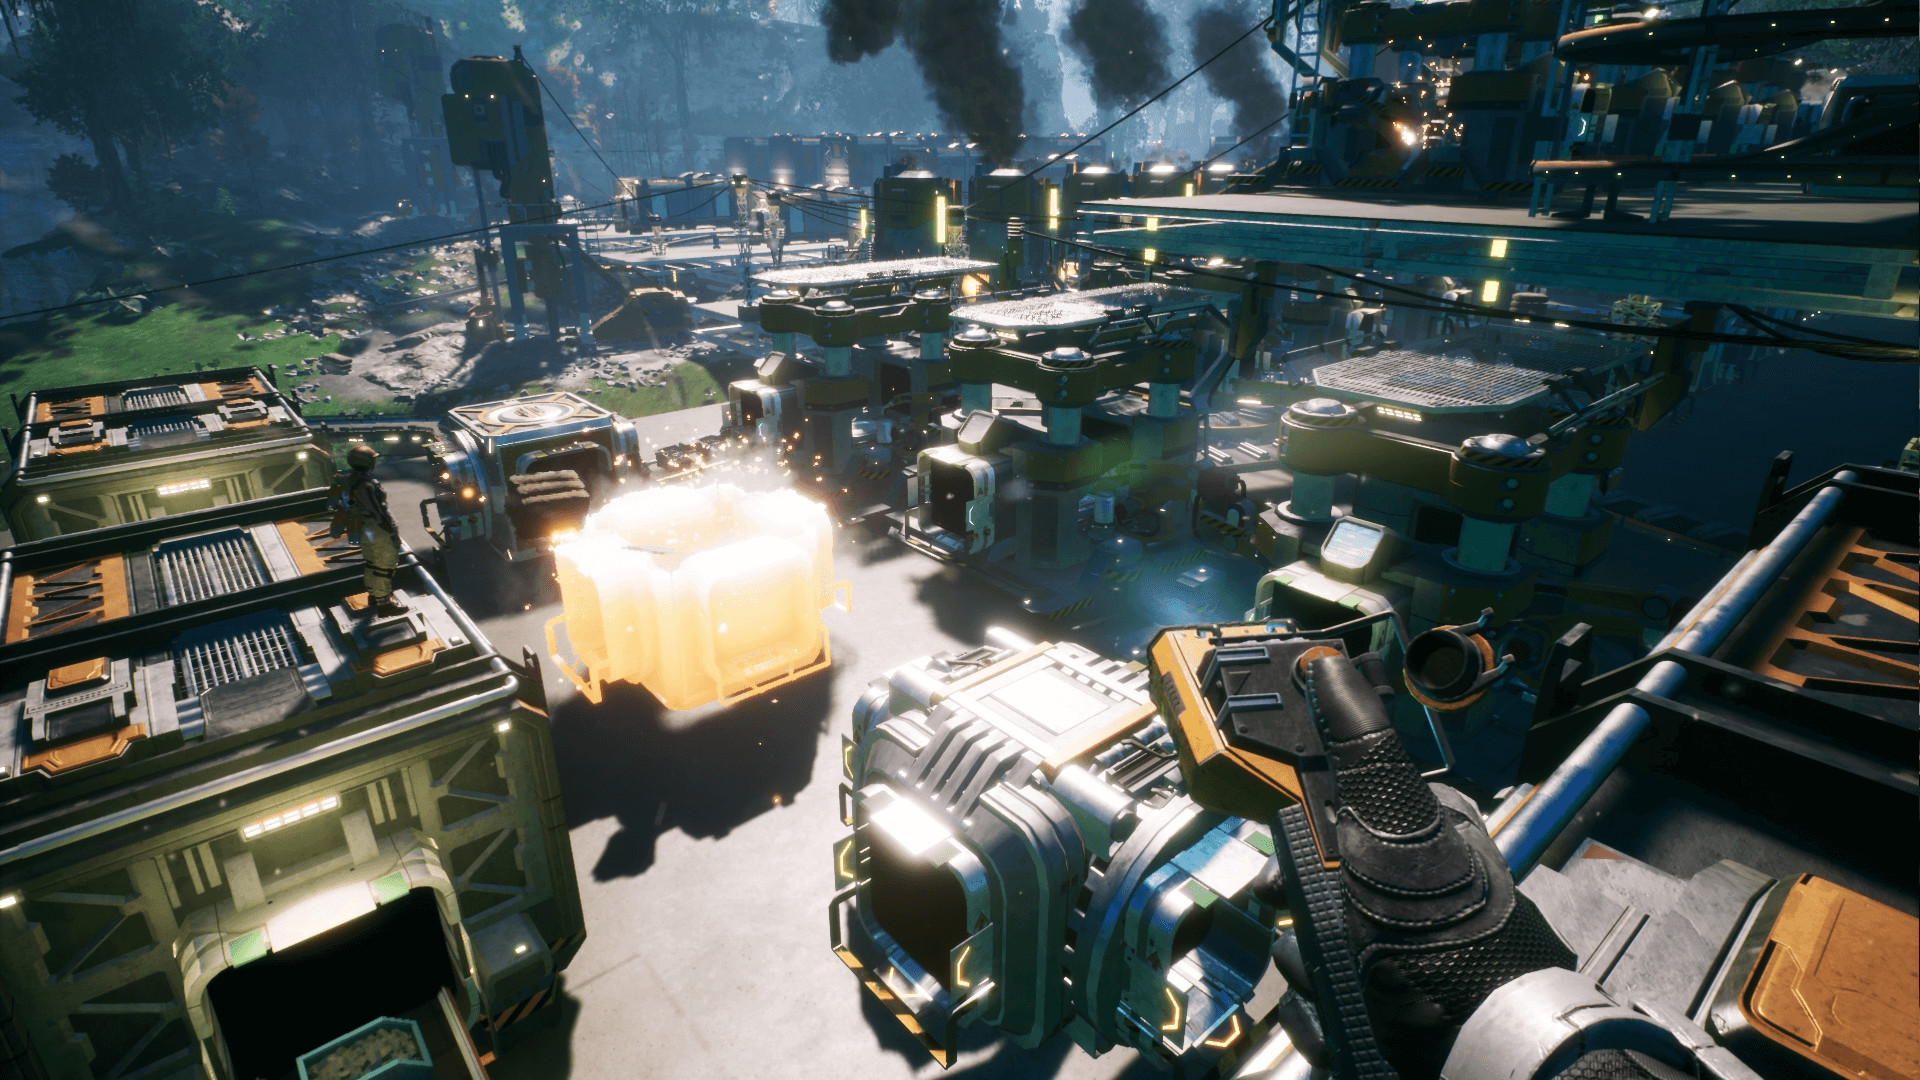 Satisfactory has sold over 500,000 copies as an Epic Games